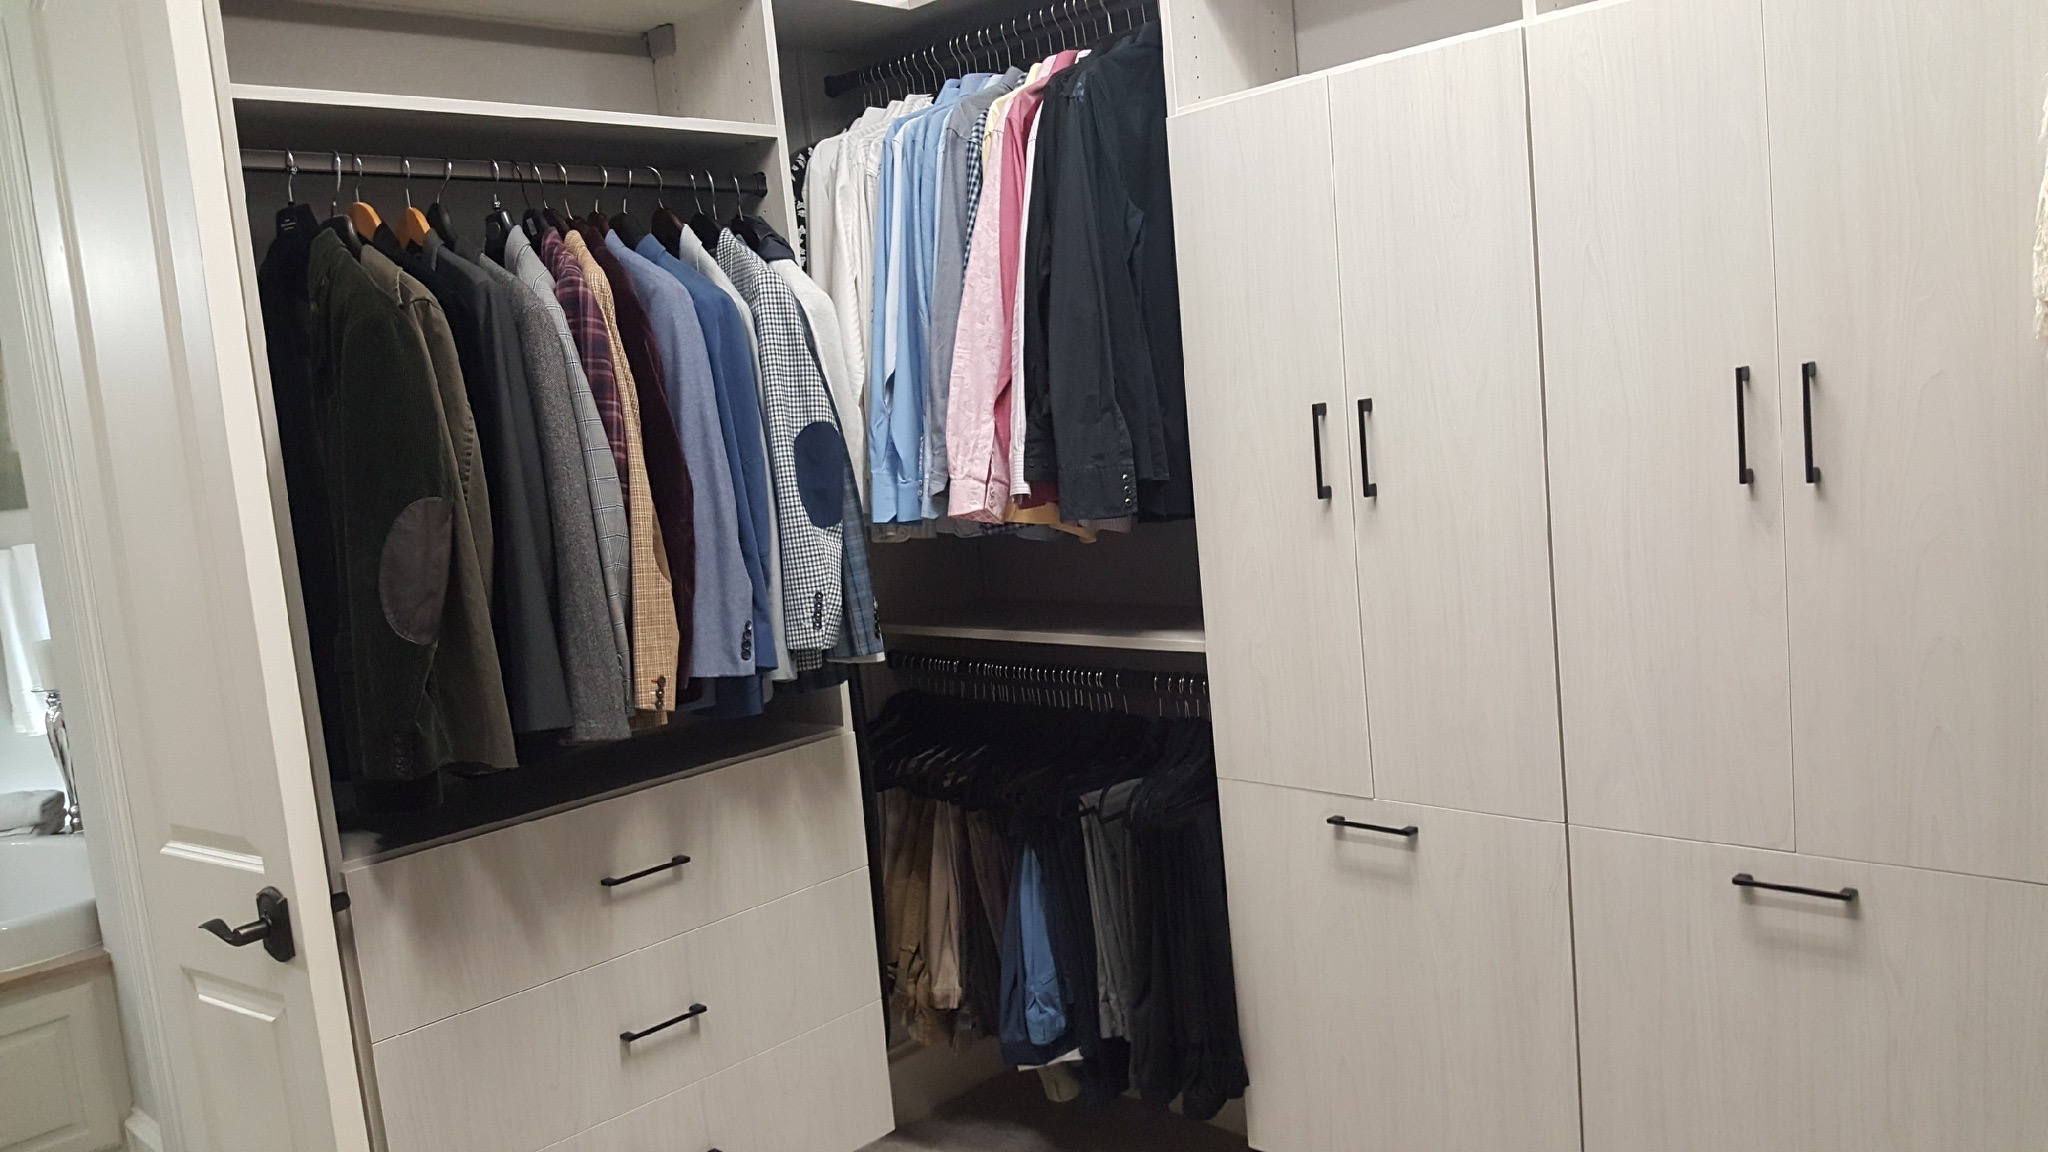 Is your closet bursting at the seams and begging for some reorganization? After you've done the difficult step of purging unwanted clothes, you may be wondering how to organize things as you put them away. It's time to think about closet organization by color vs item.